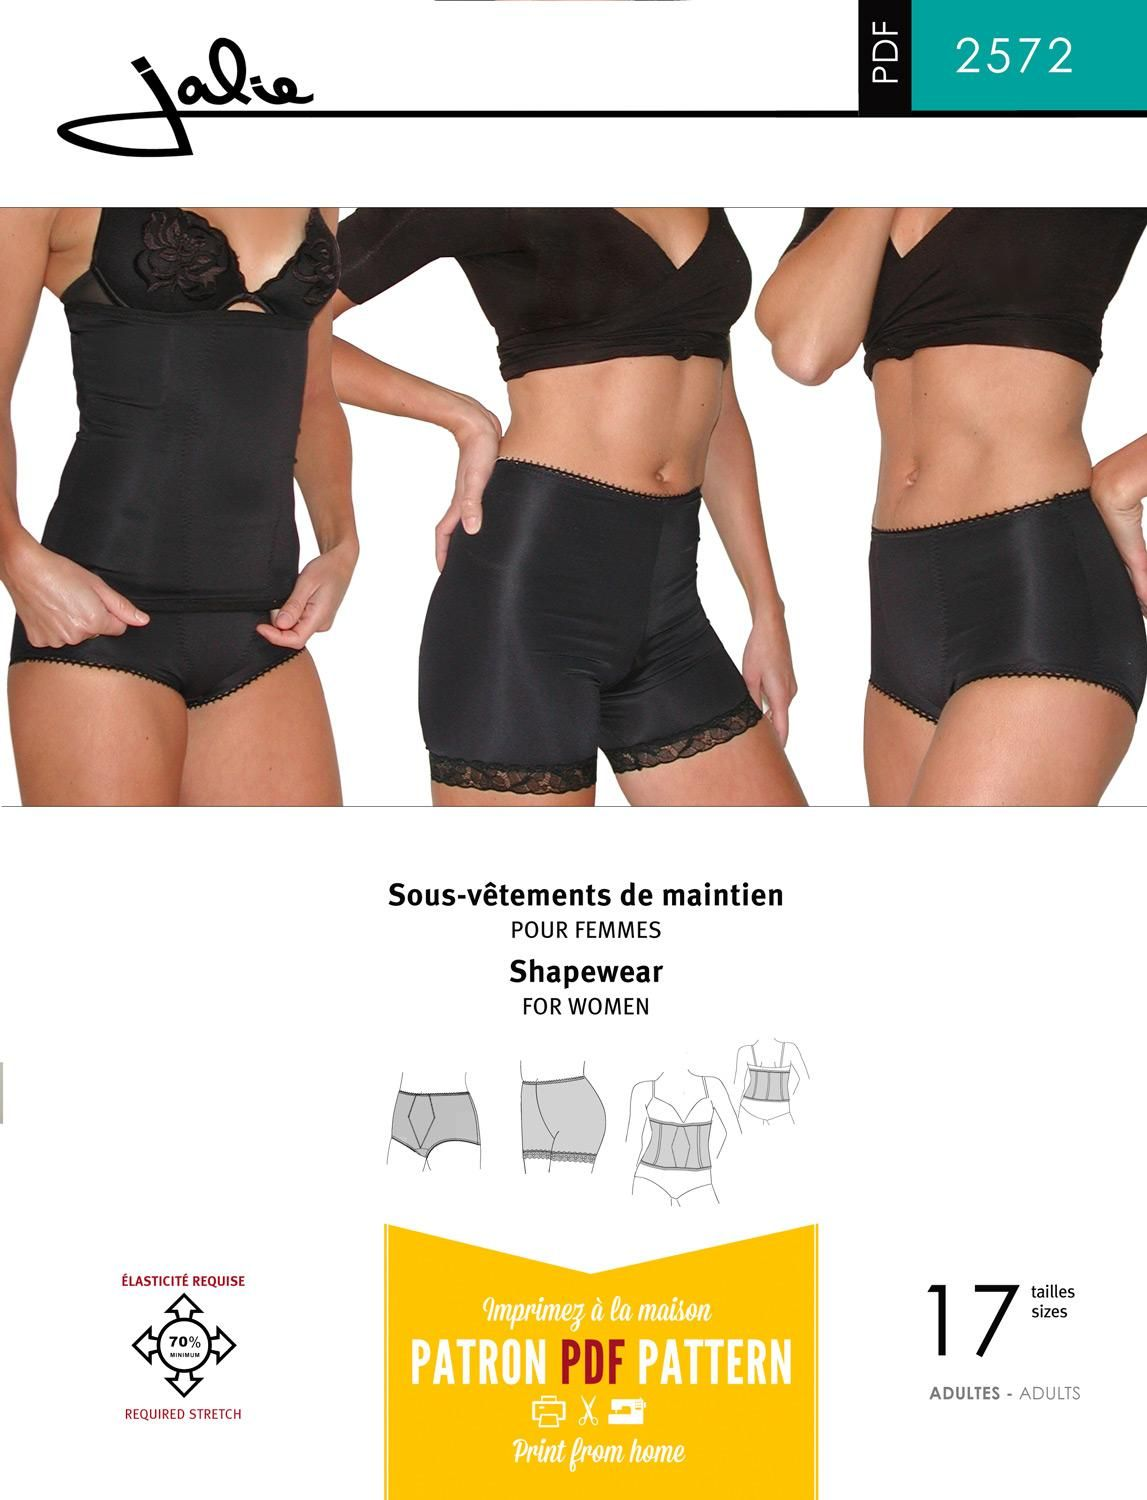 Women\'s Shapewear | PAJAMA PARTY | Pinterest | Sewing patterns ...